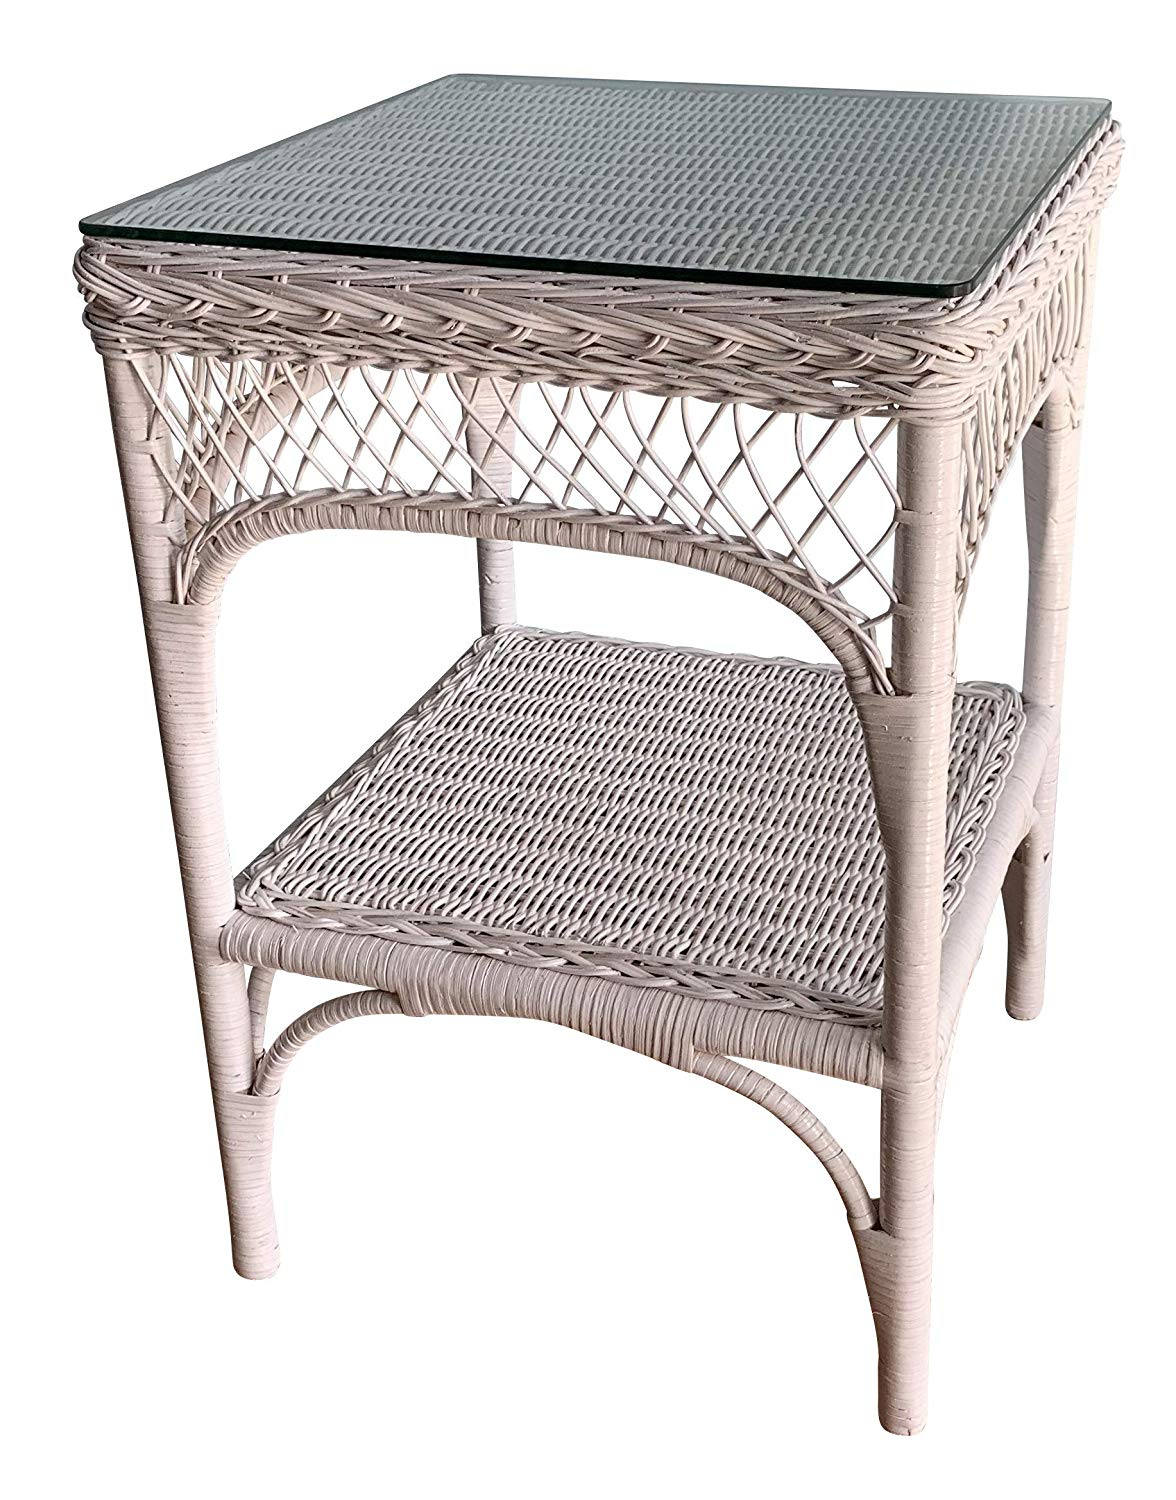 wicker paradise lattice honey with glass top end white table kitchen dining vanity lights ashley furniture rustic tables metal cart coffee cappuccino nightstand ameriwood hallway